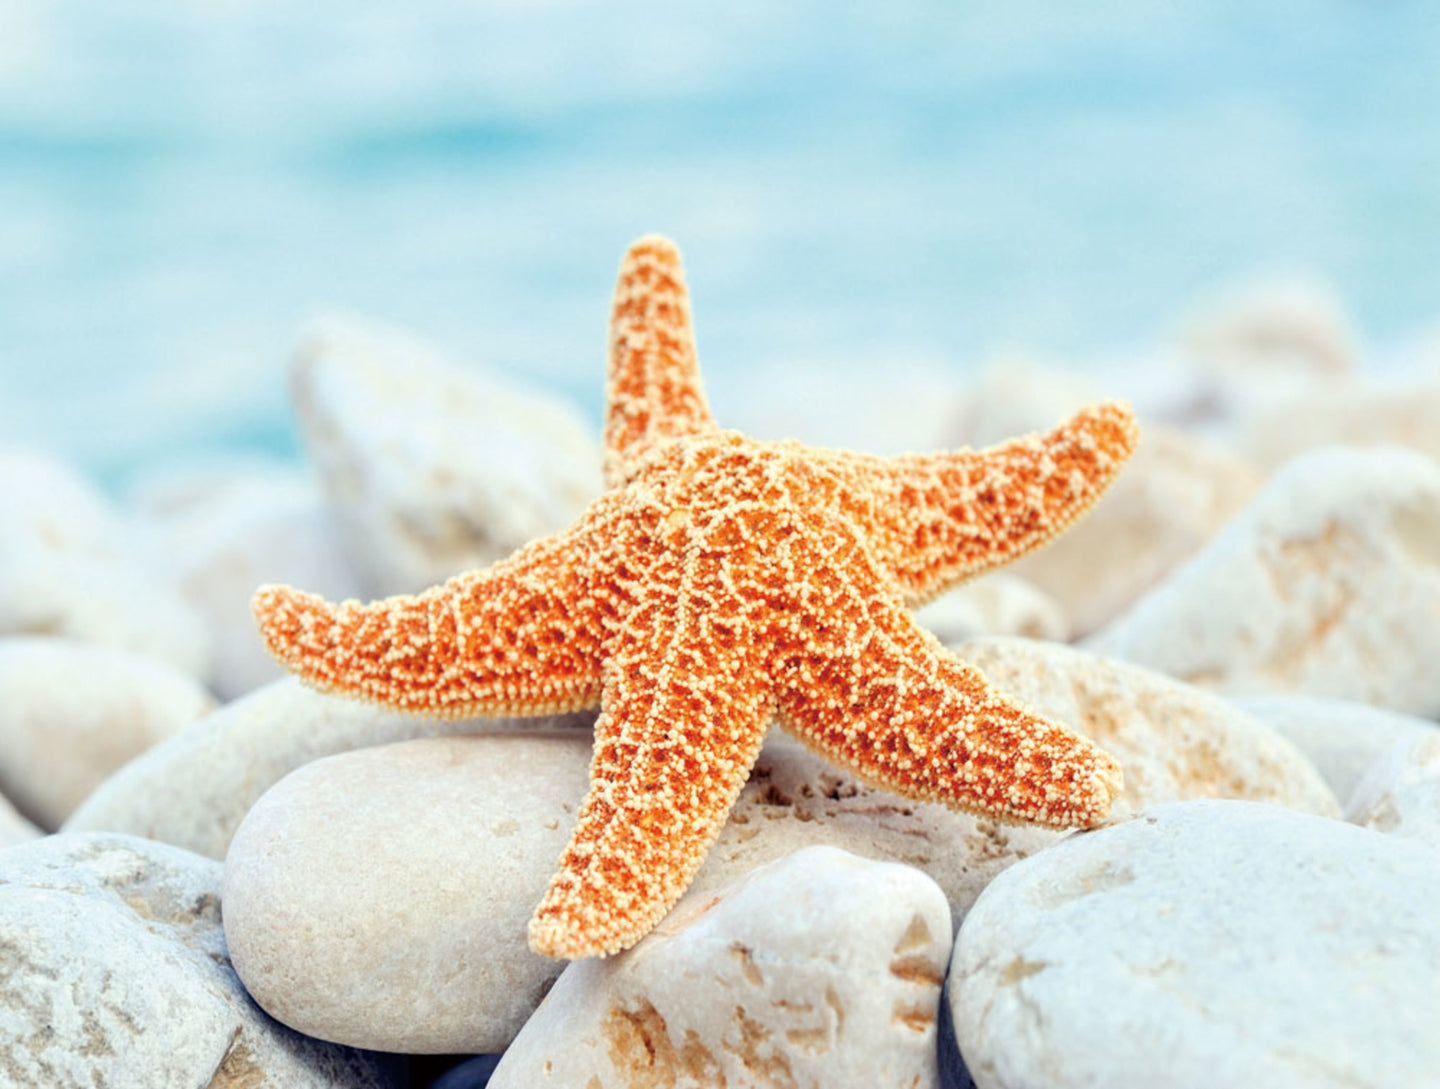 Cortesi Home Sea Star Dreams Tempered Glass Wall Art, 12